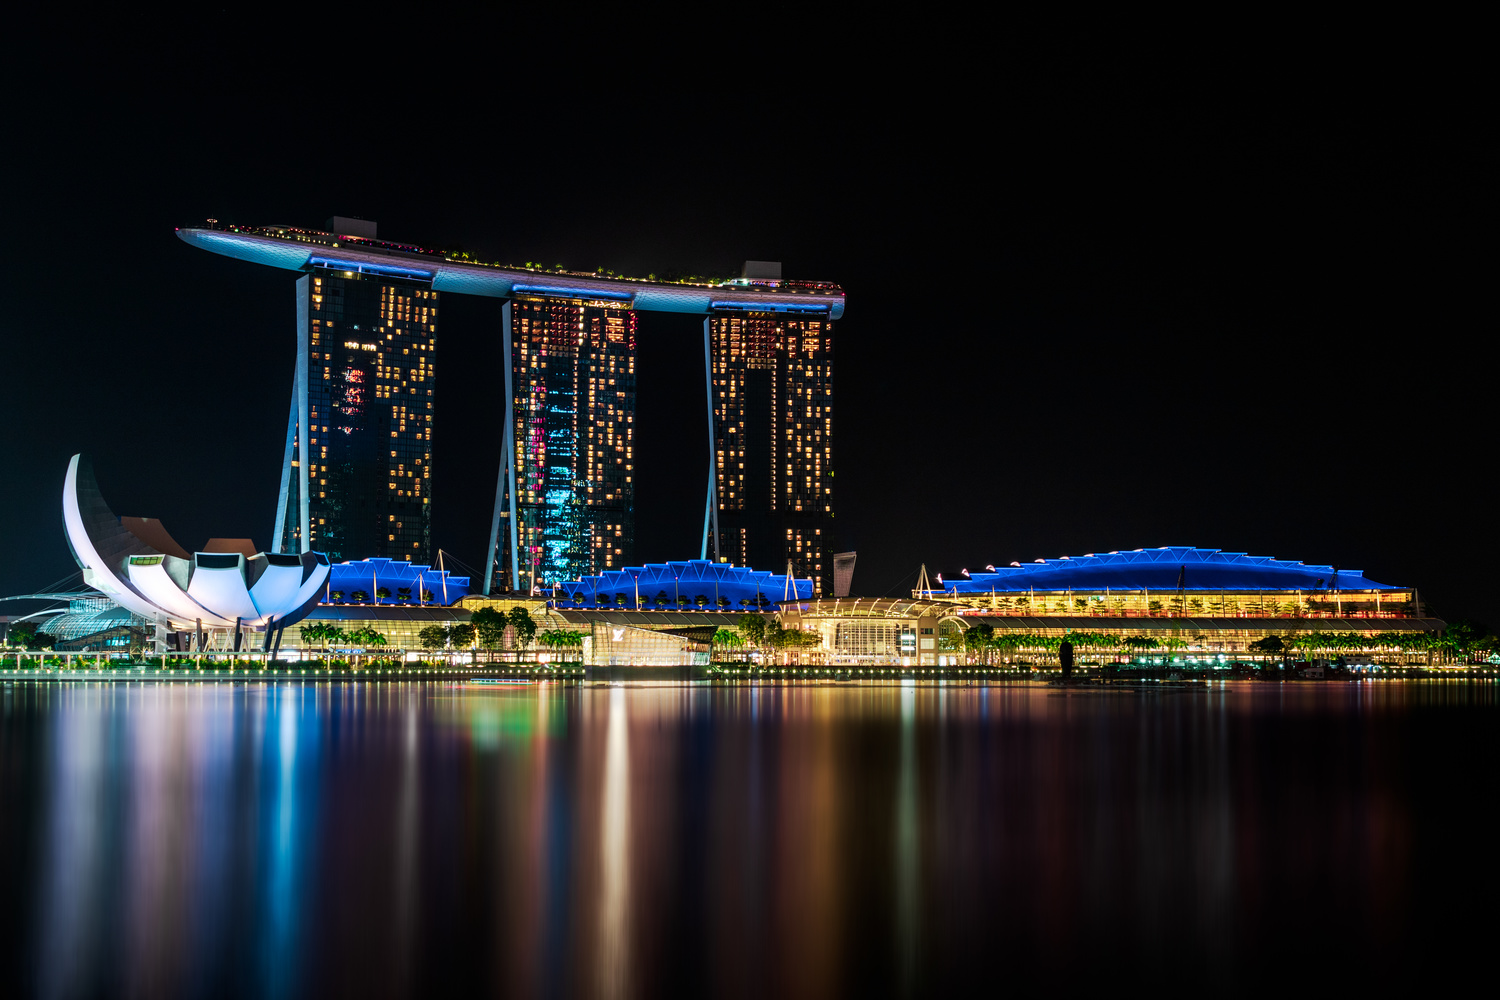 Marina Bay hotel by Mike Huberts